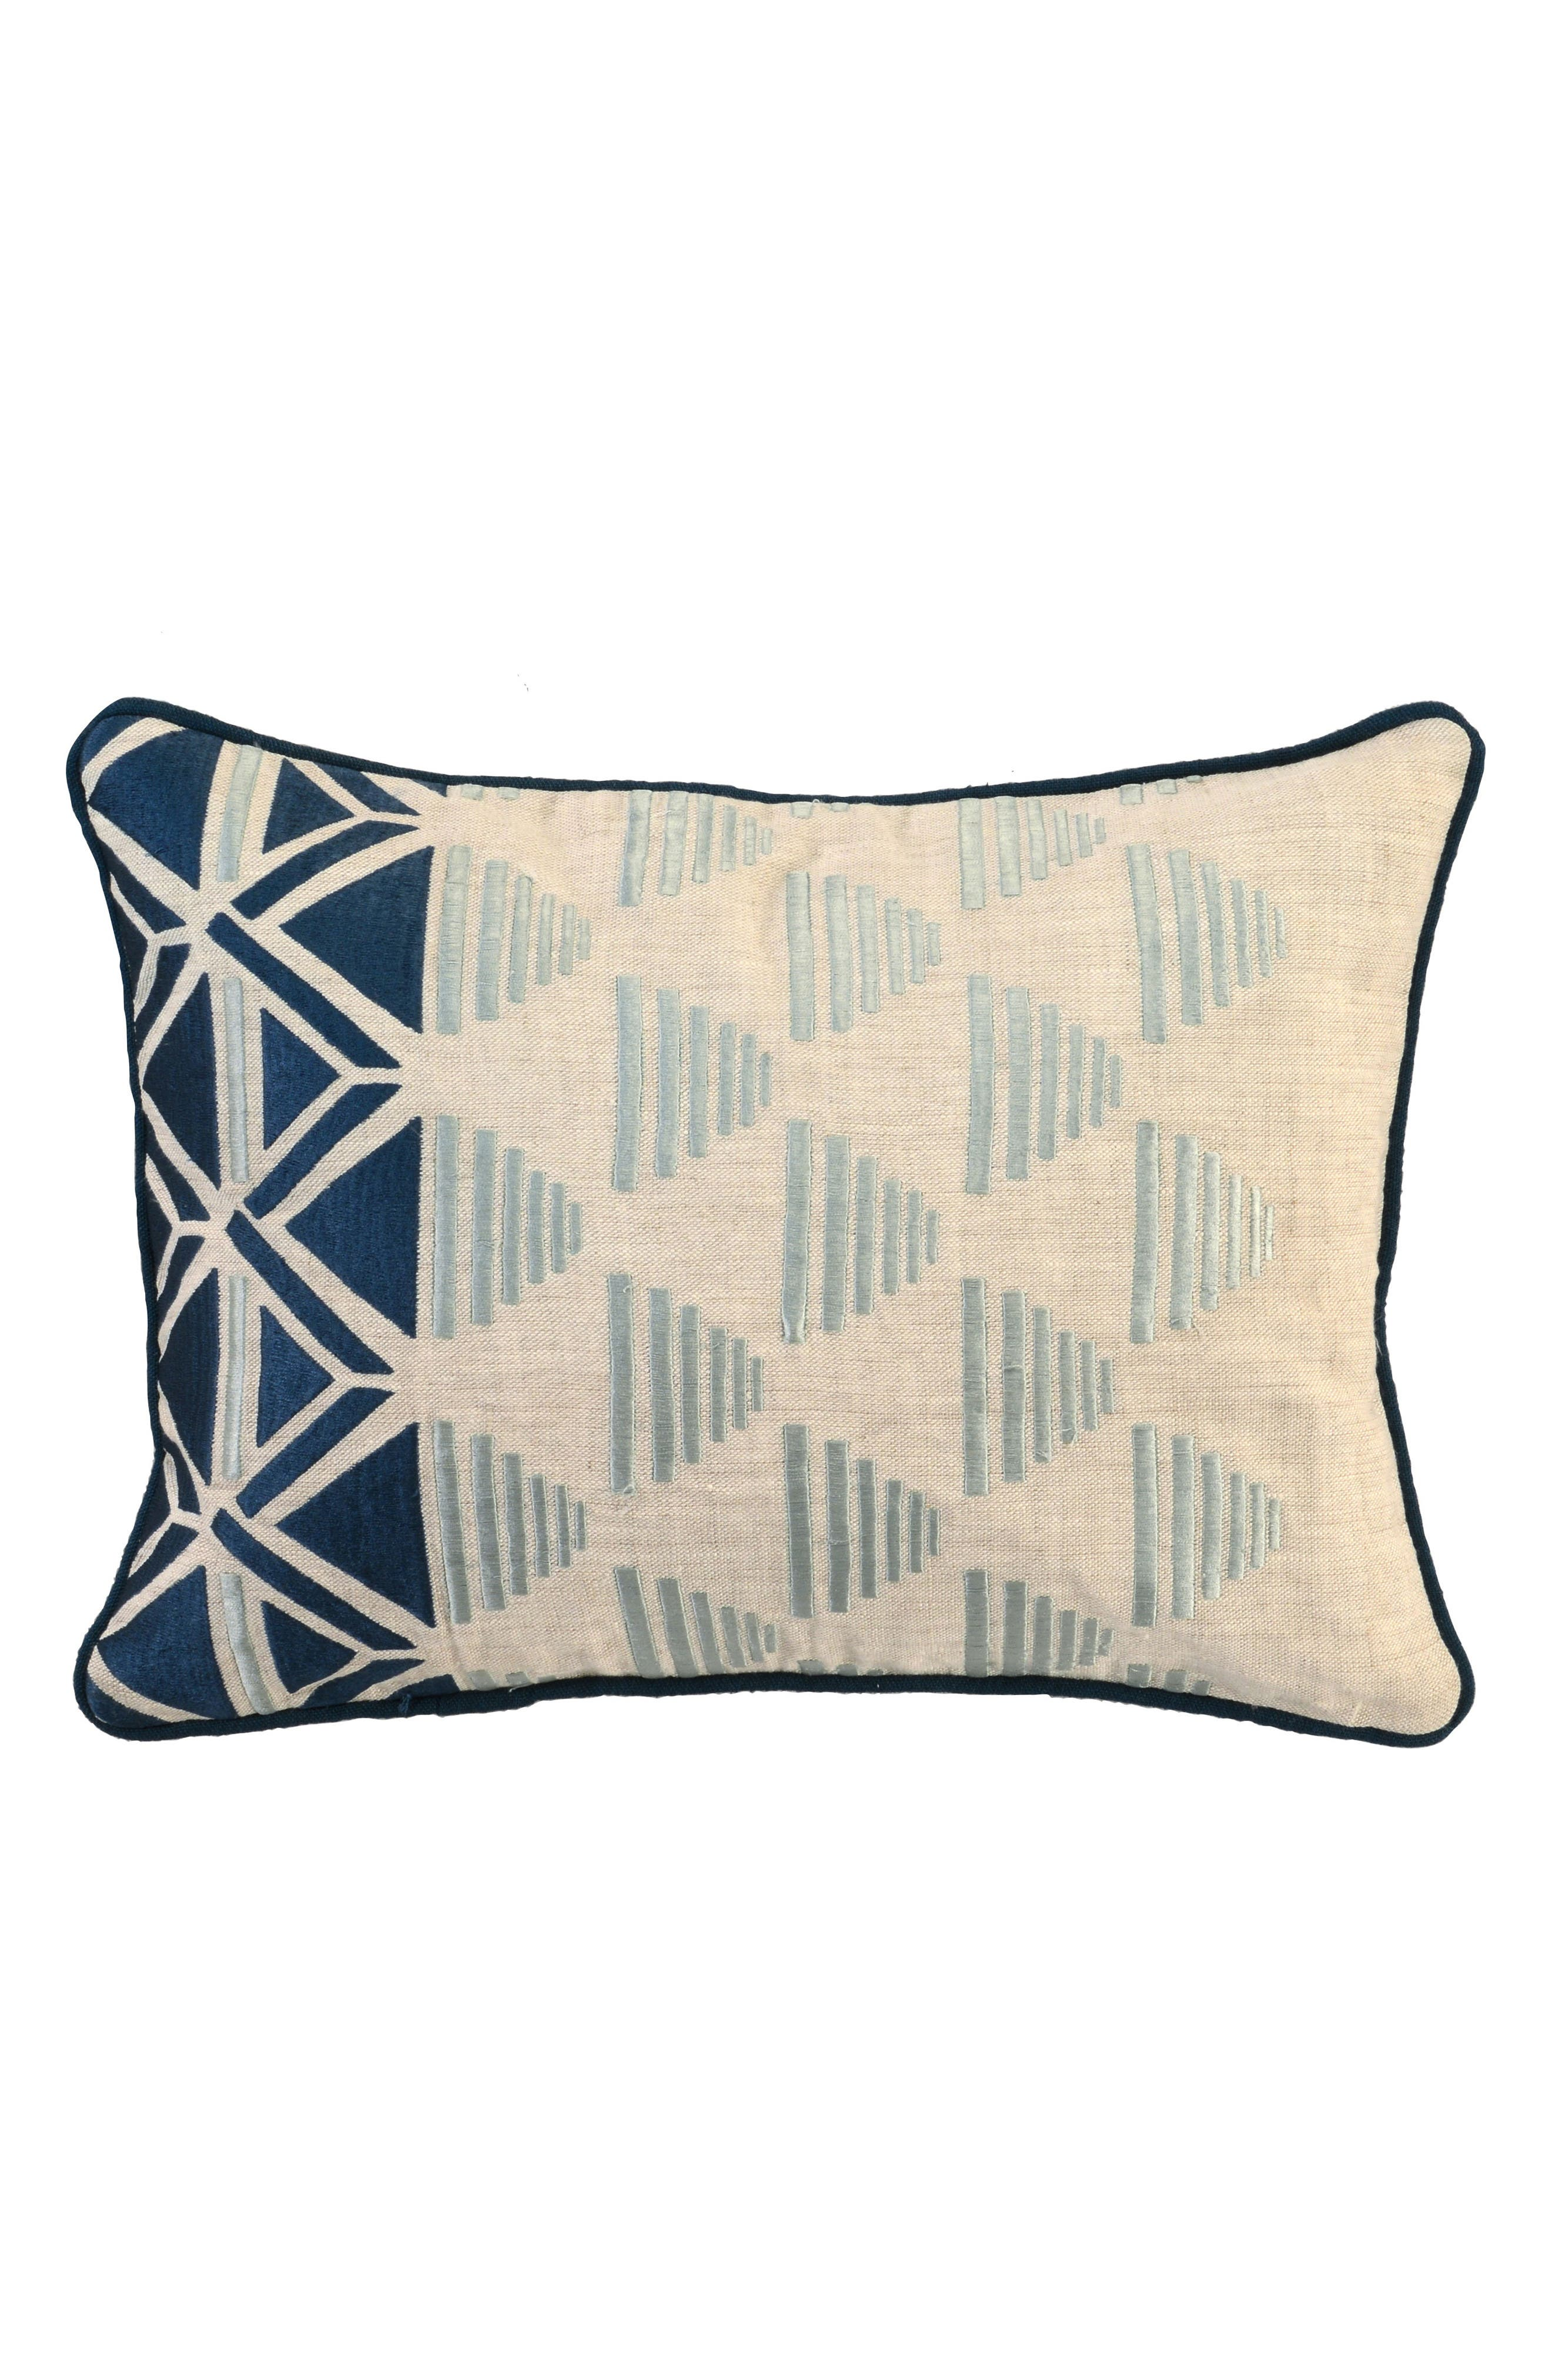 Embroidered Pillow,                         Main,                         color, 400